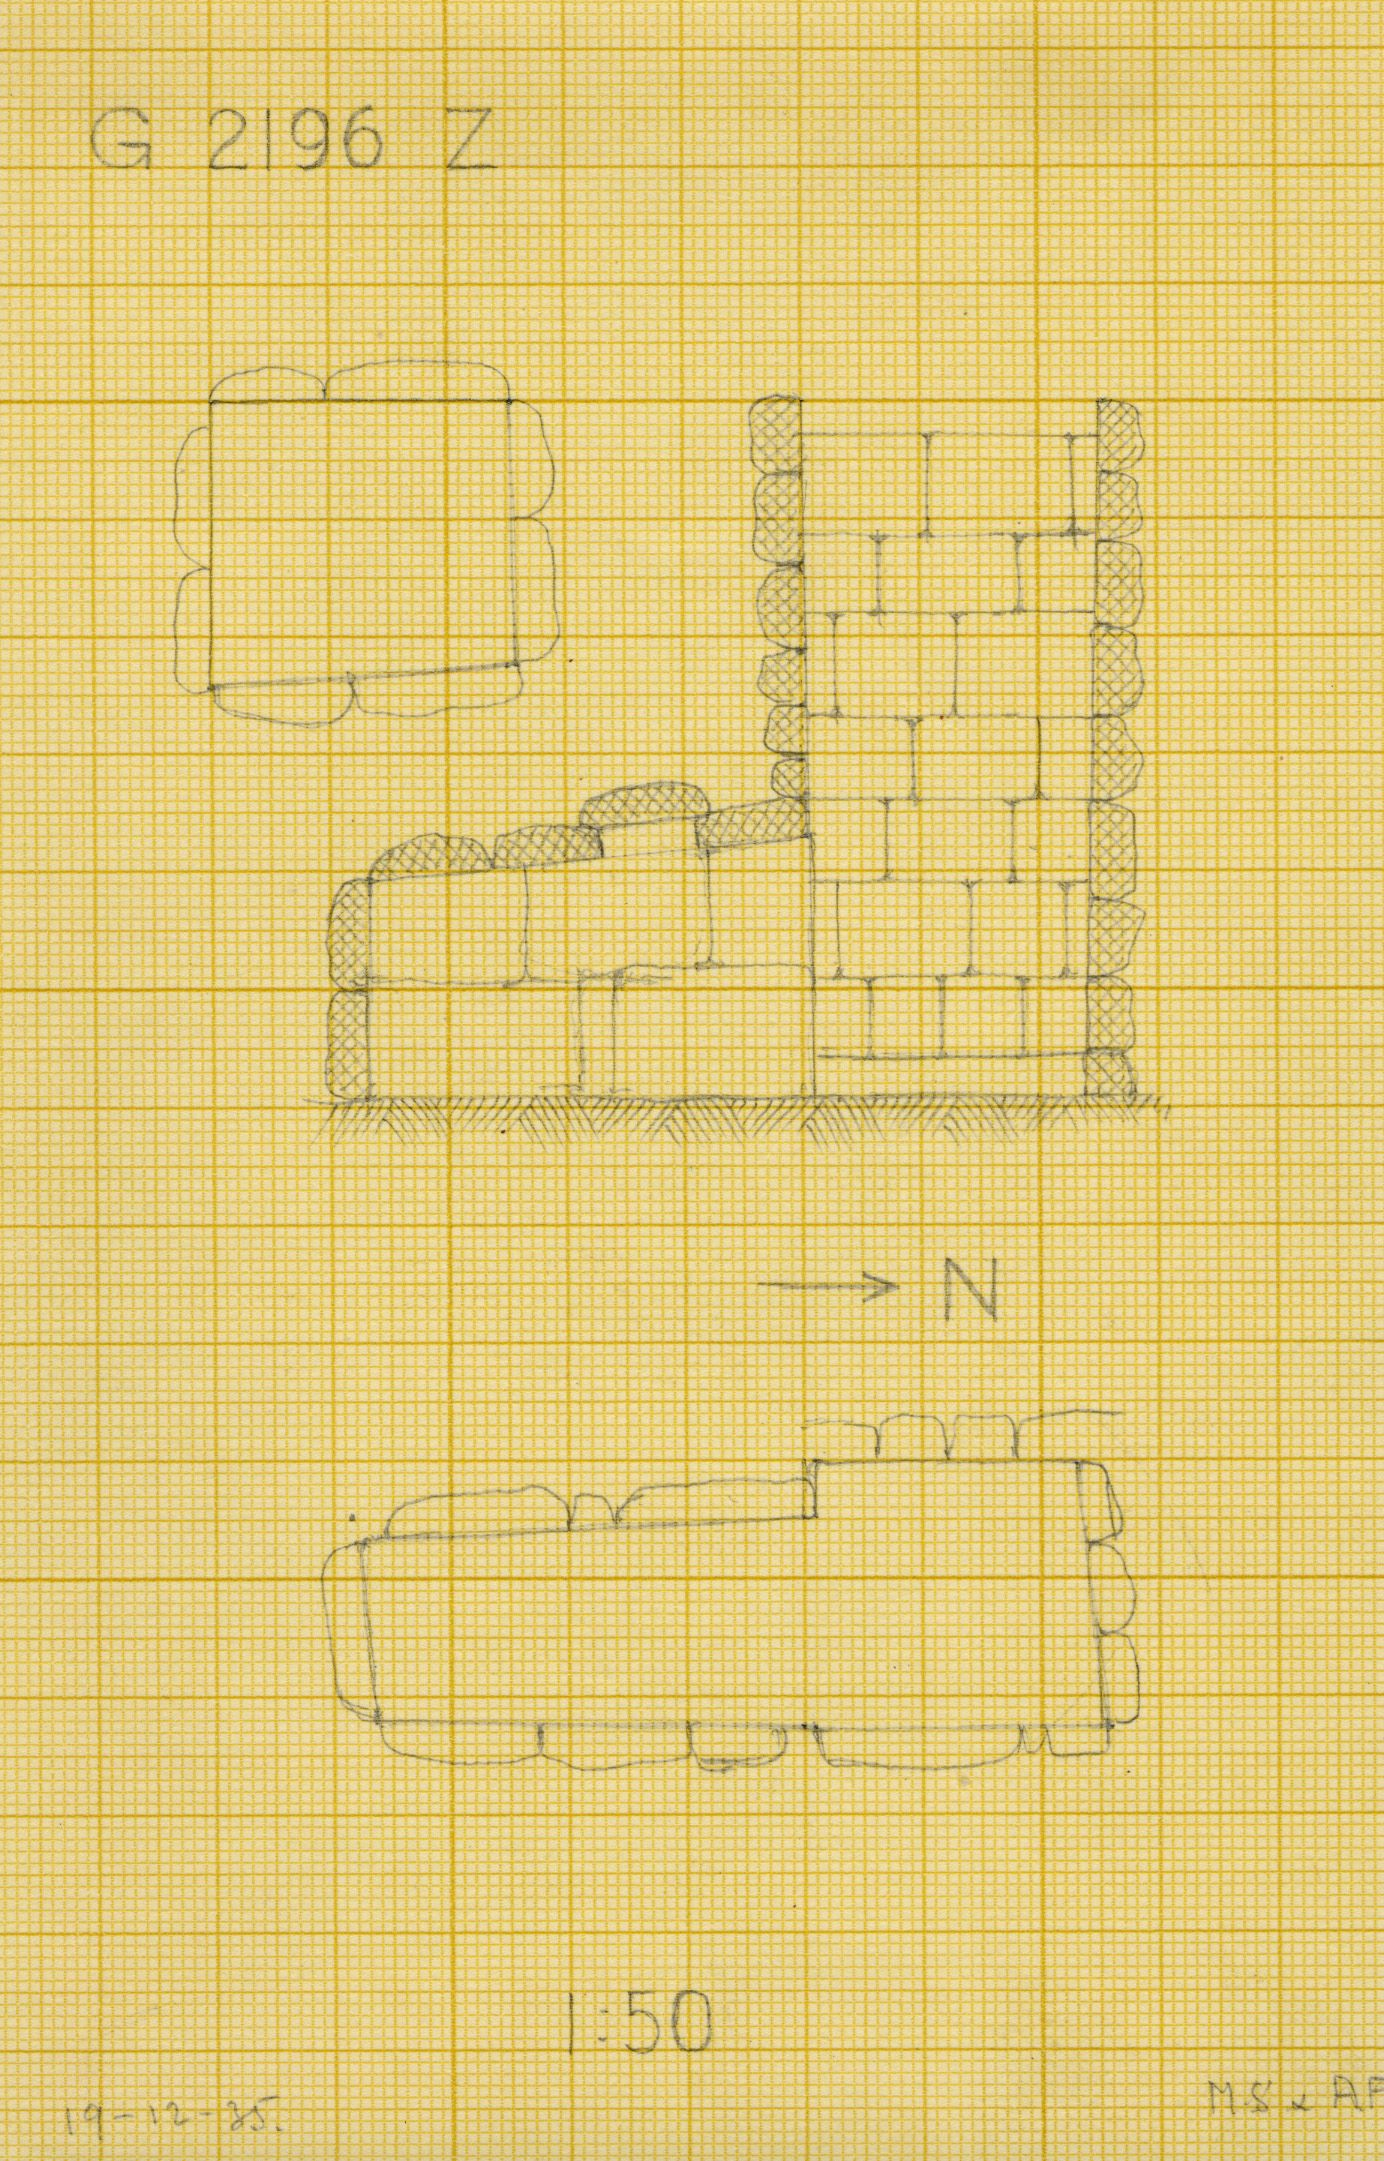 Maps and plans: G 2196, Shaft Z